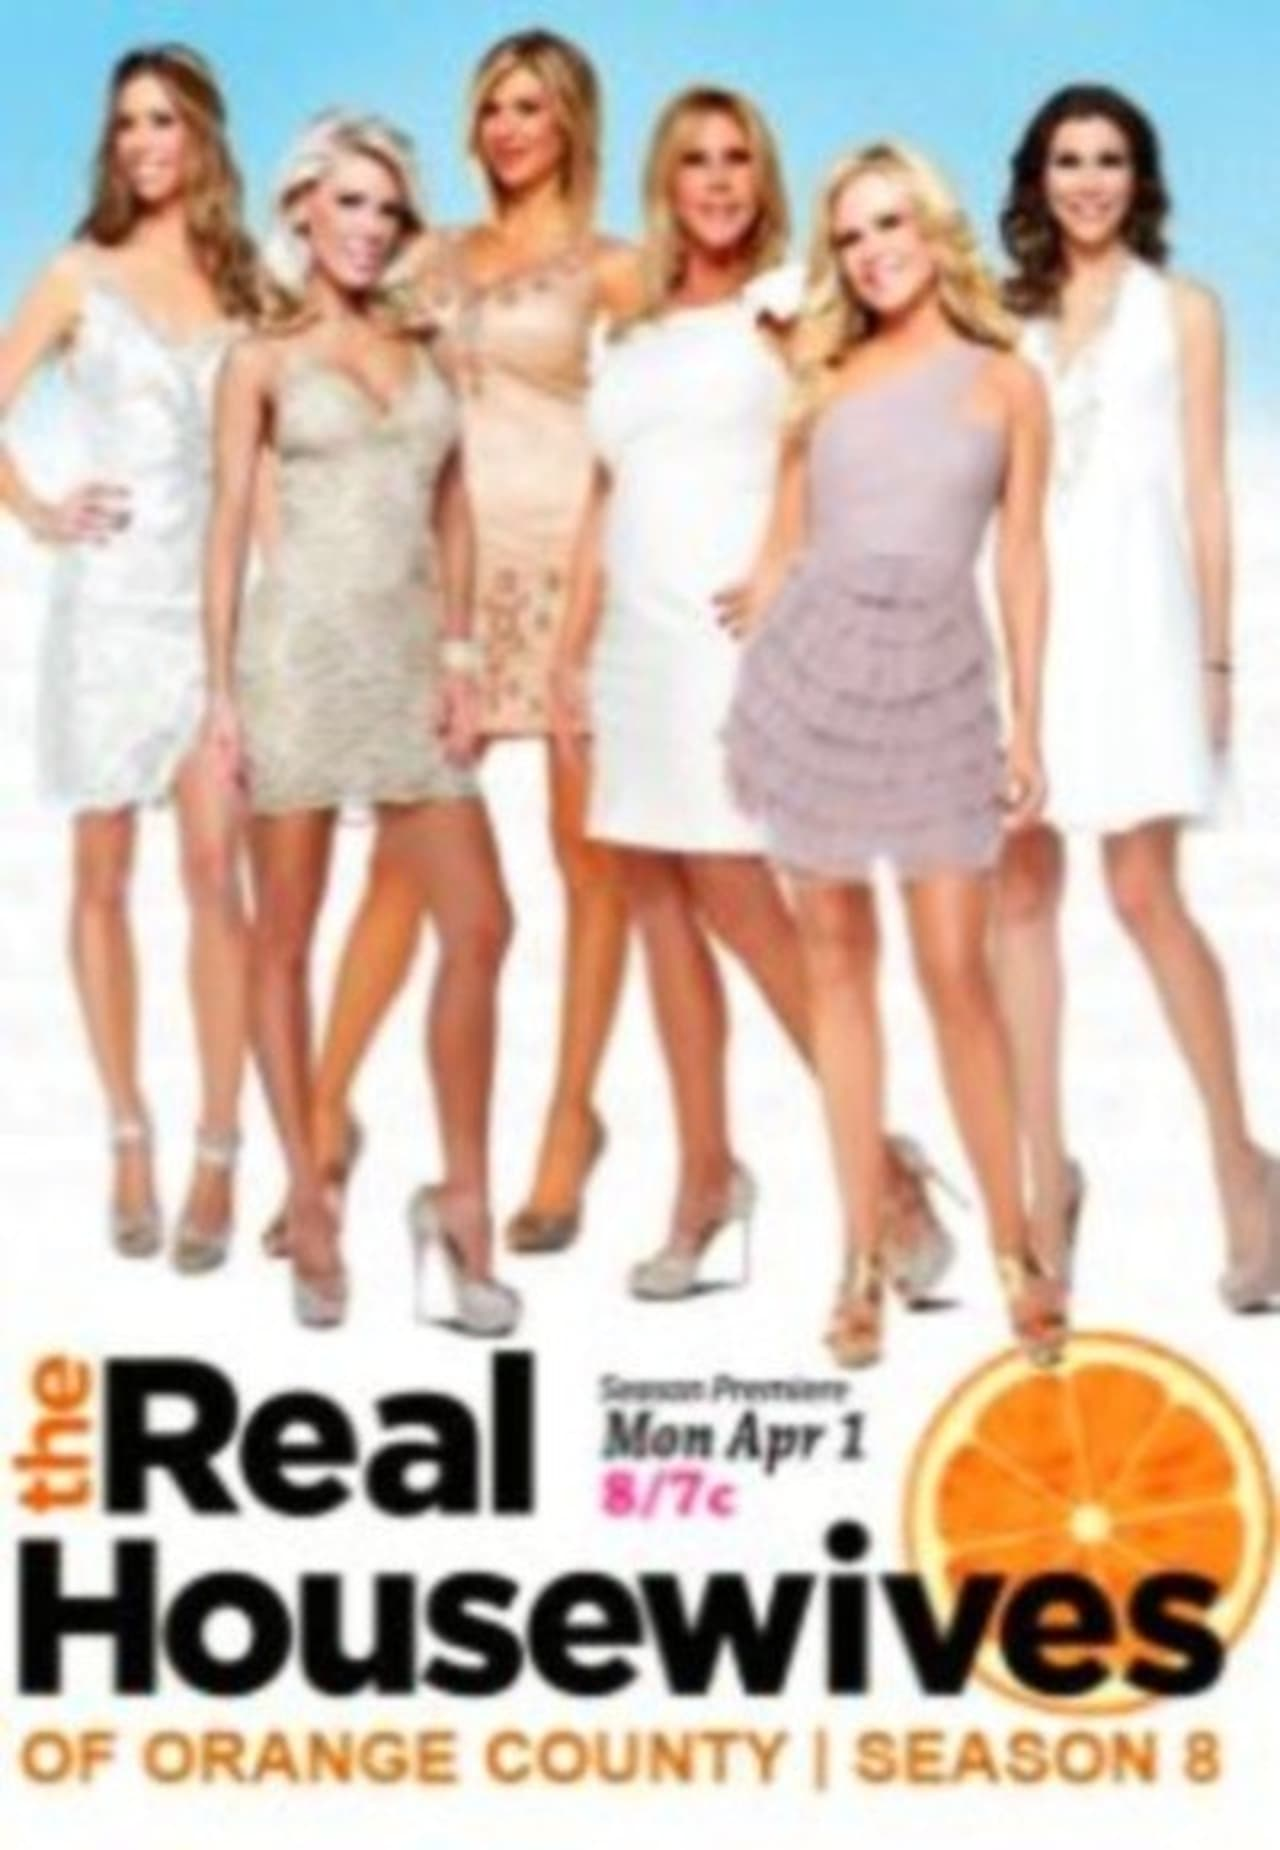 Putlocker The Real Housewives Of Orange County Season 8 (2013)